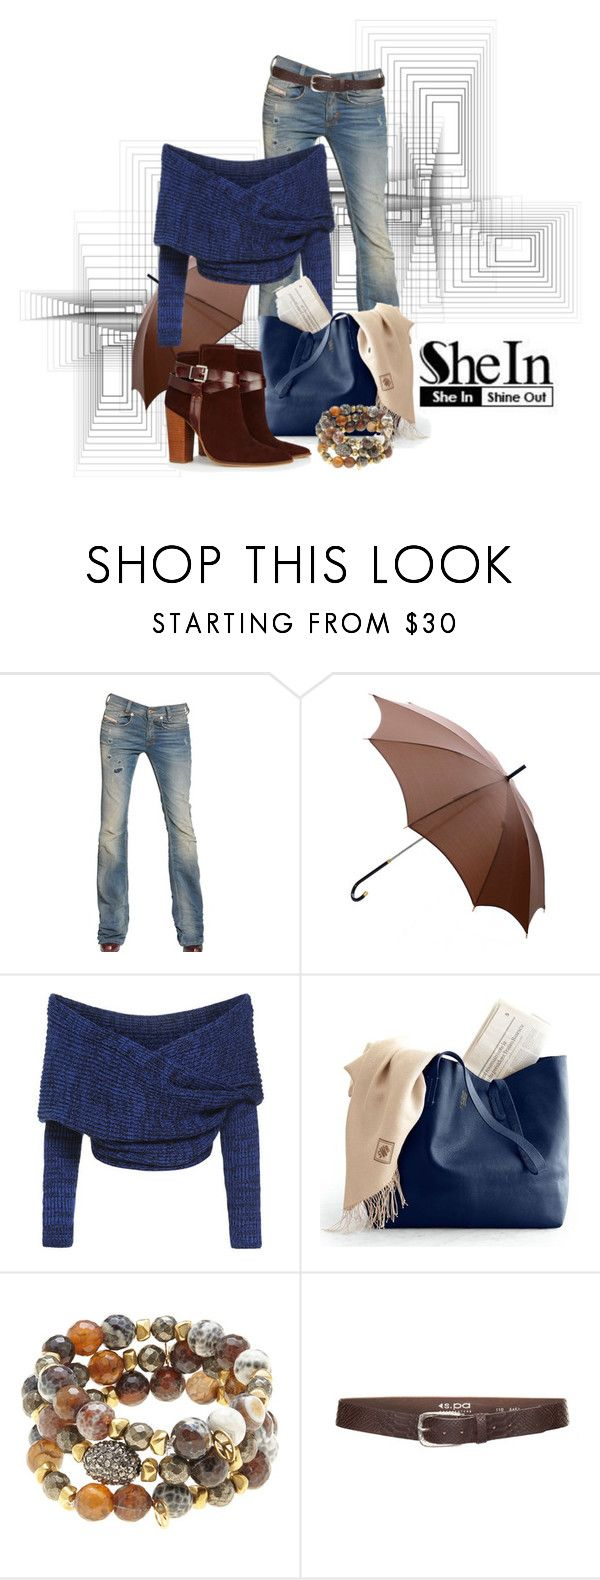 """""""SHEIN CONTEST: BLUE CROP SWEATER!!!!!"""" by scandalicious ❤ liked on Polyvore featuring Schumacher, Diesel, Gucci, Hipchik, s.pa accessoires and Warehouse"""